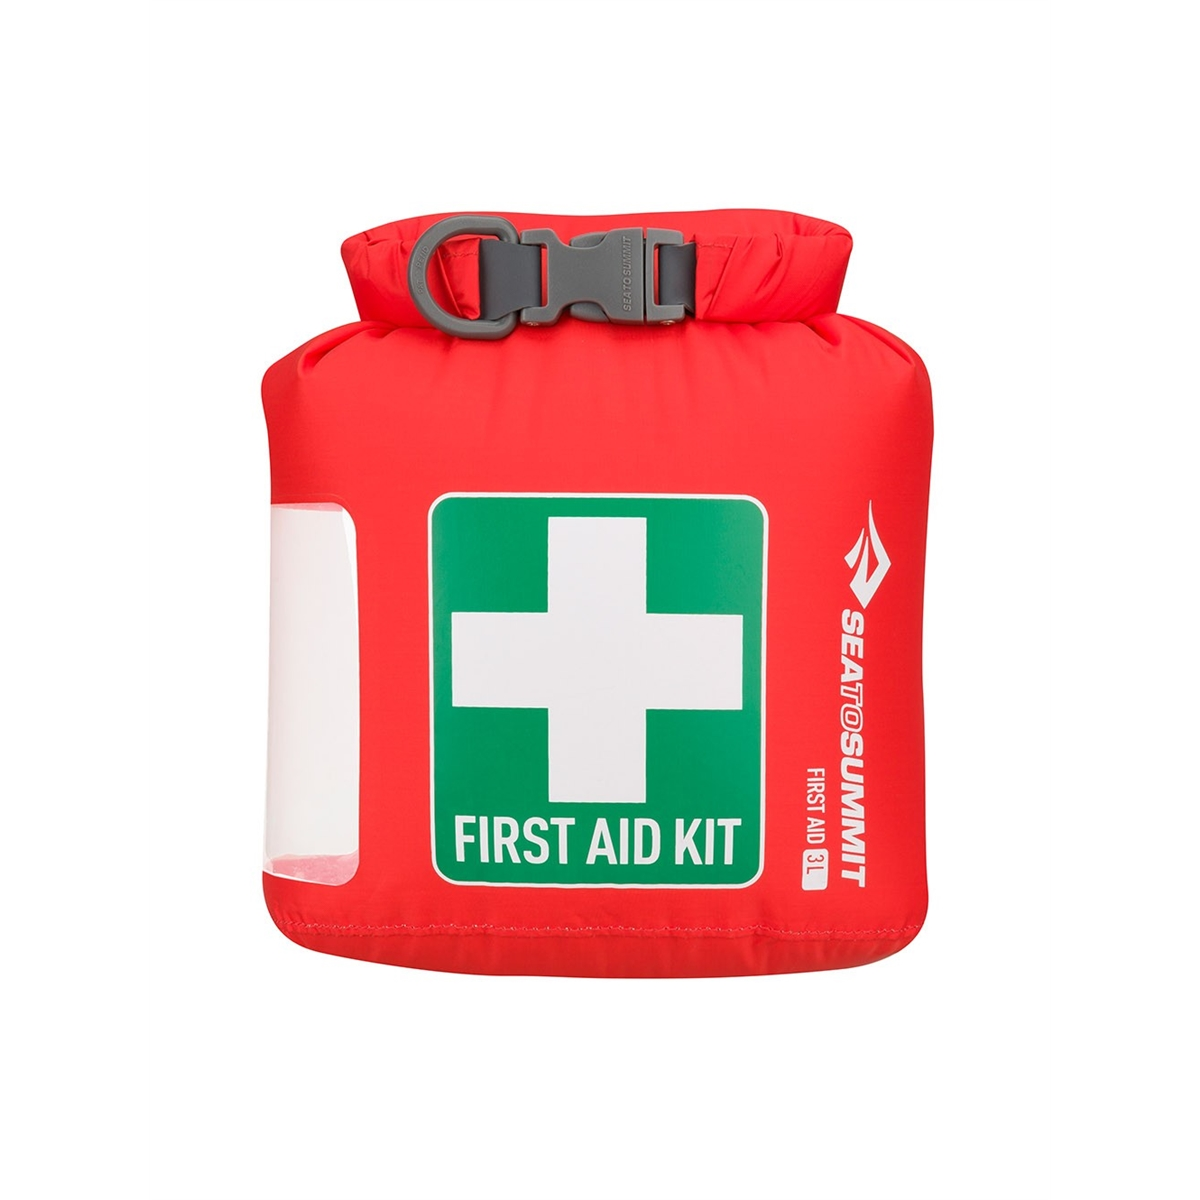 SACO ESTANQUE FIRST AID DRY SACK OVERNIGHT 3L - SEA TO SUMMIT